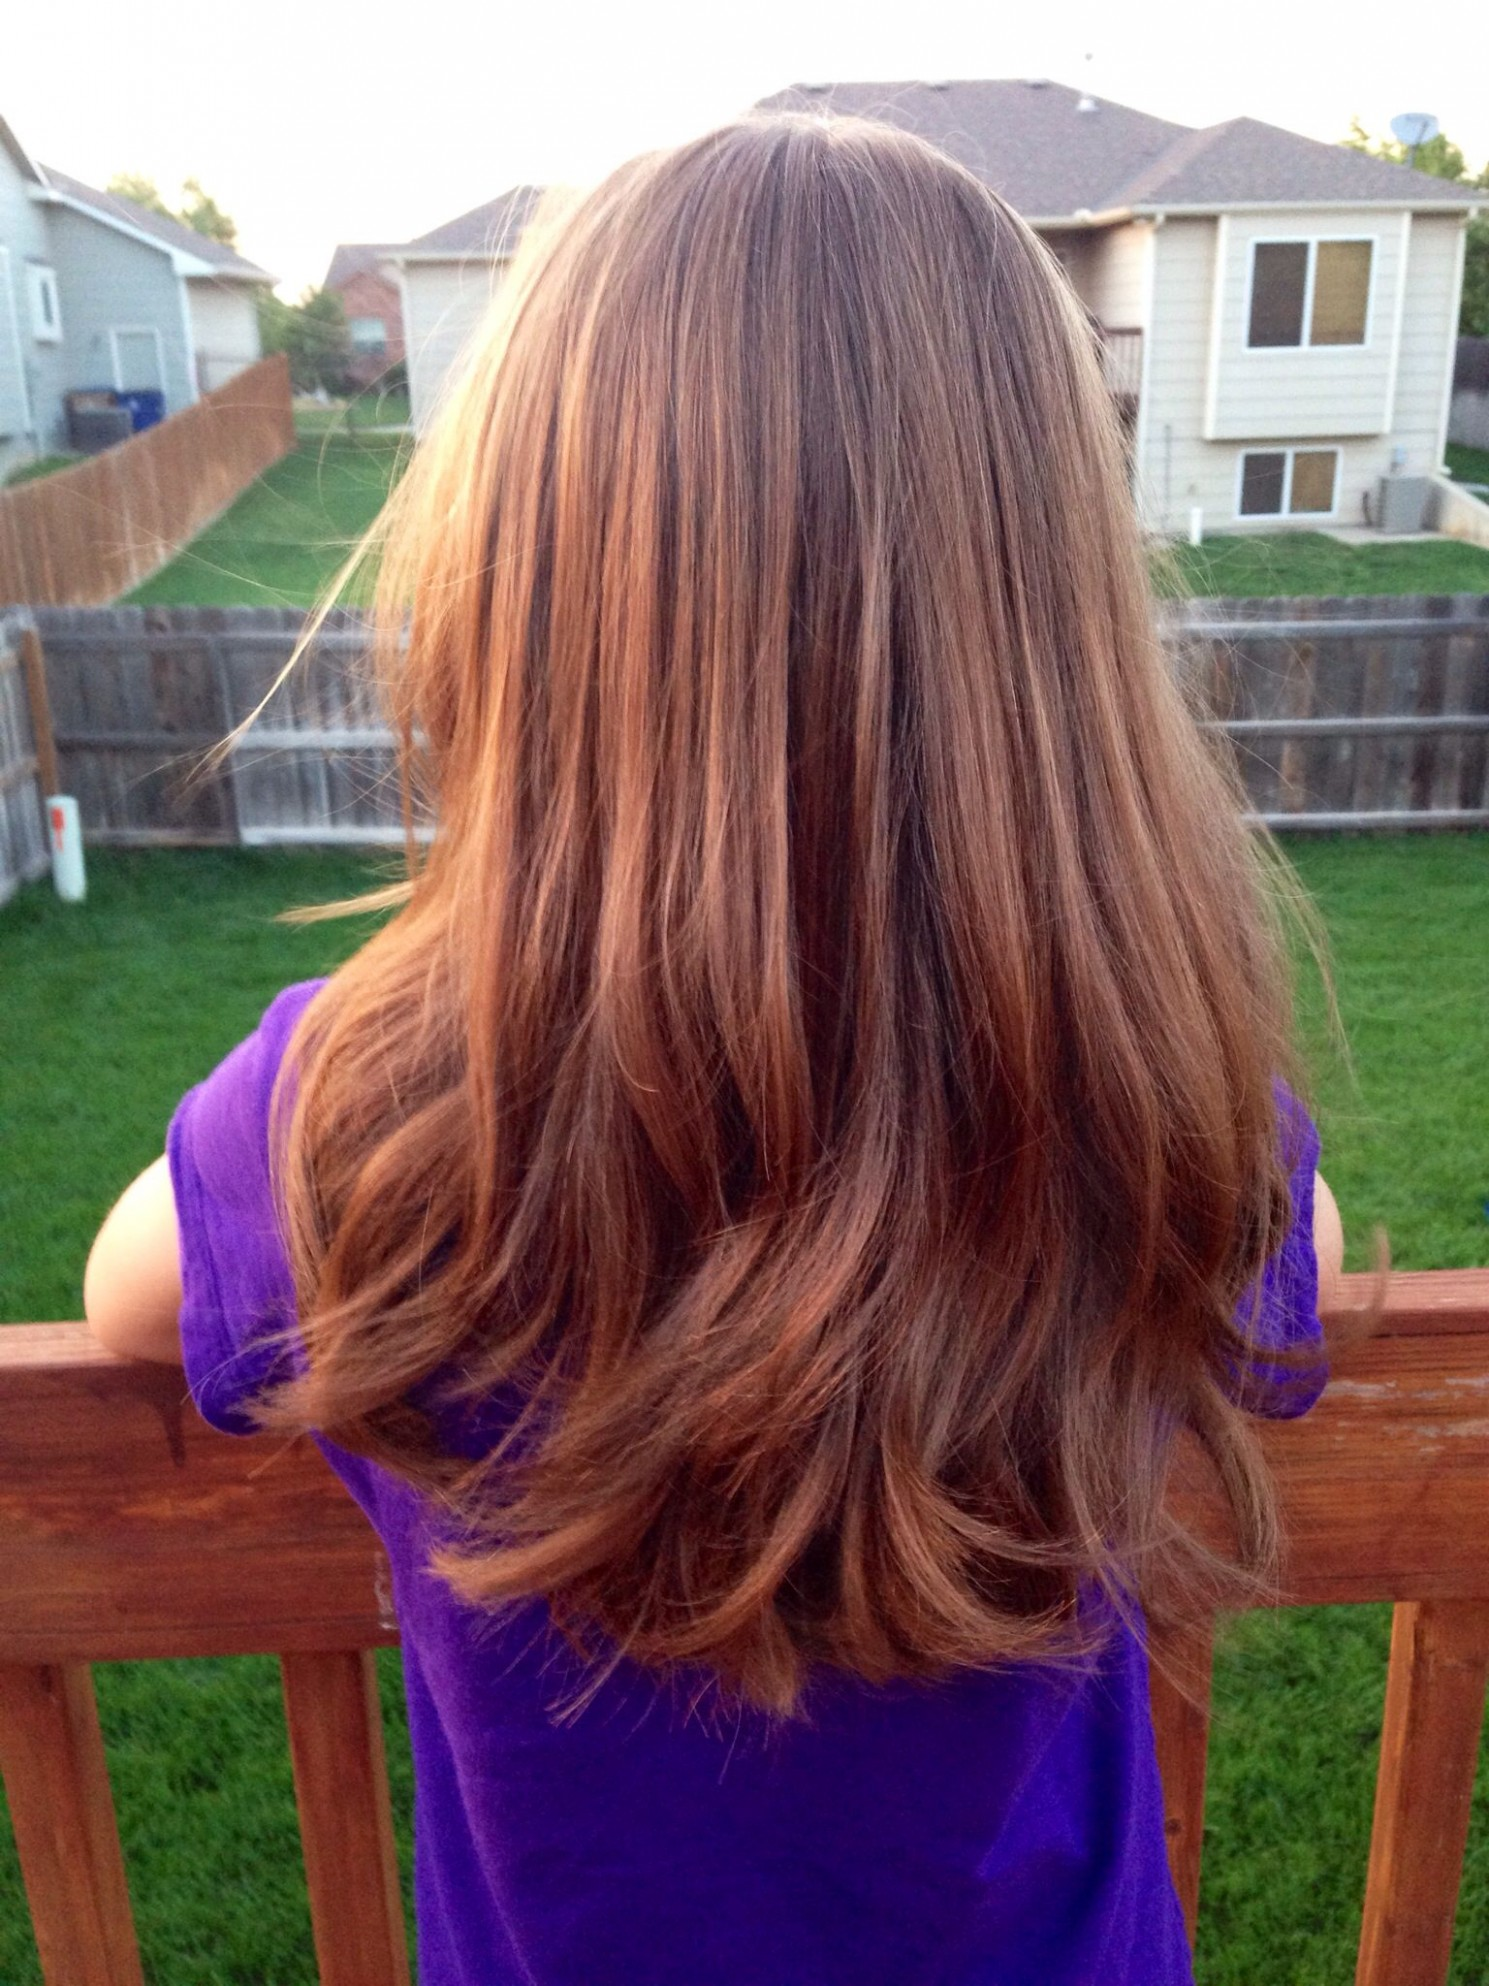 Long Layers, Thick Hair, Little Girls Hairstyles Long Hair Haircuts For Little Girls With Long Hair